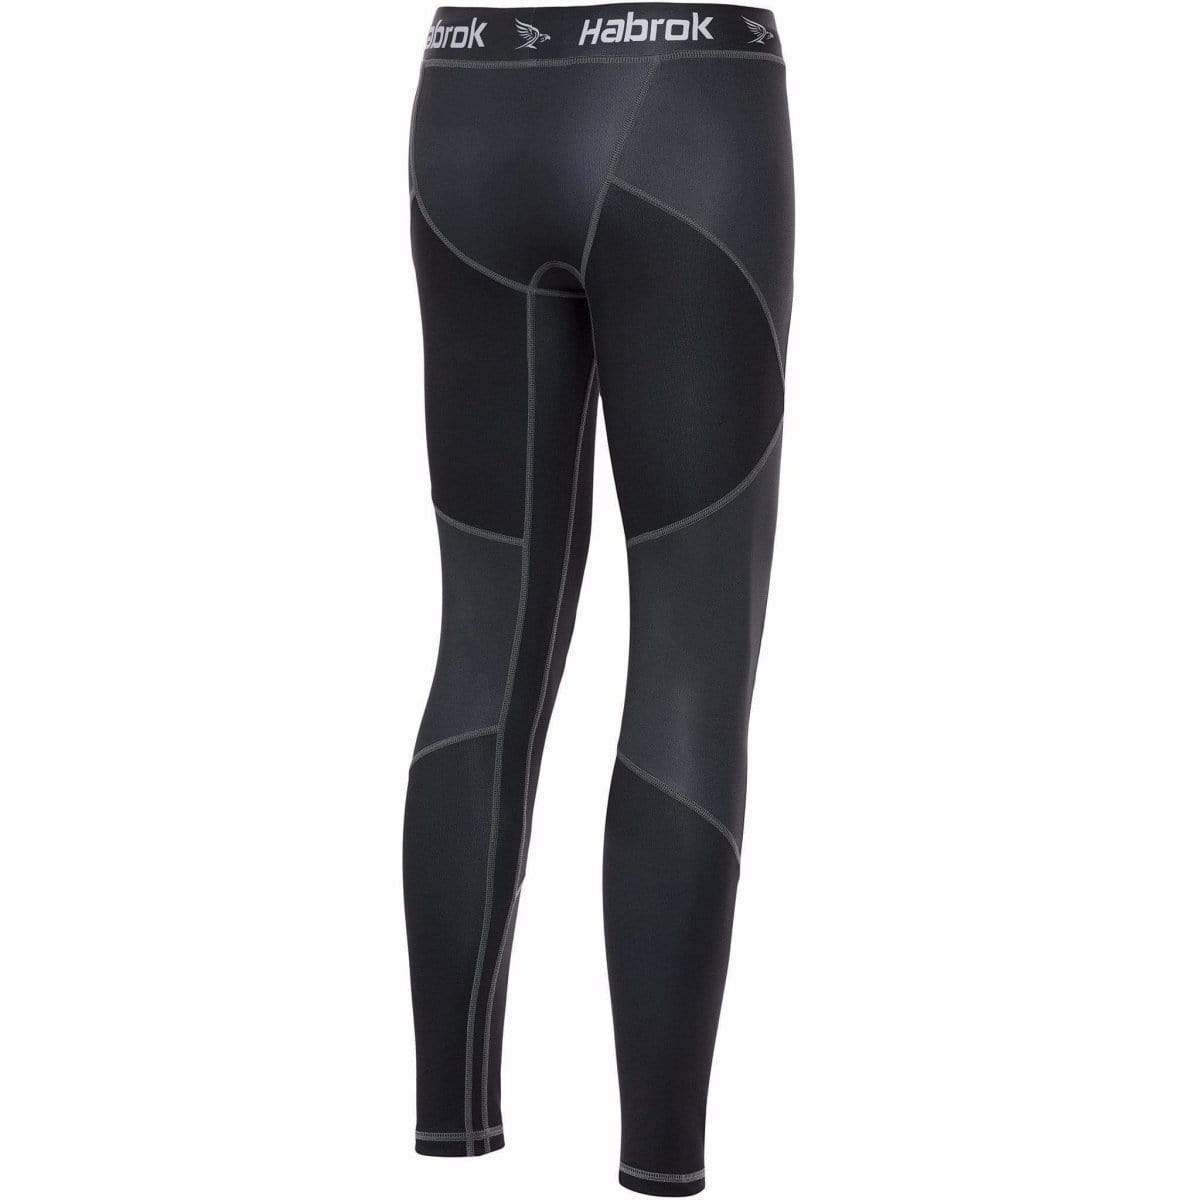 Habrok Spats Pugnator | Compression Pants | Men